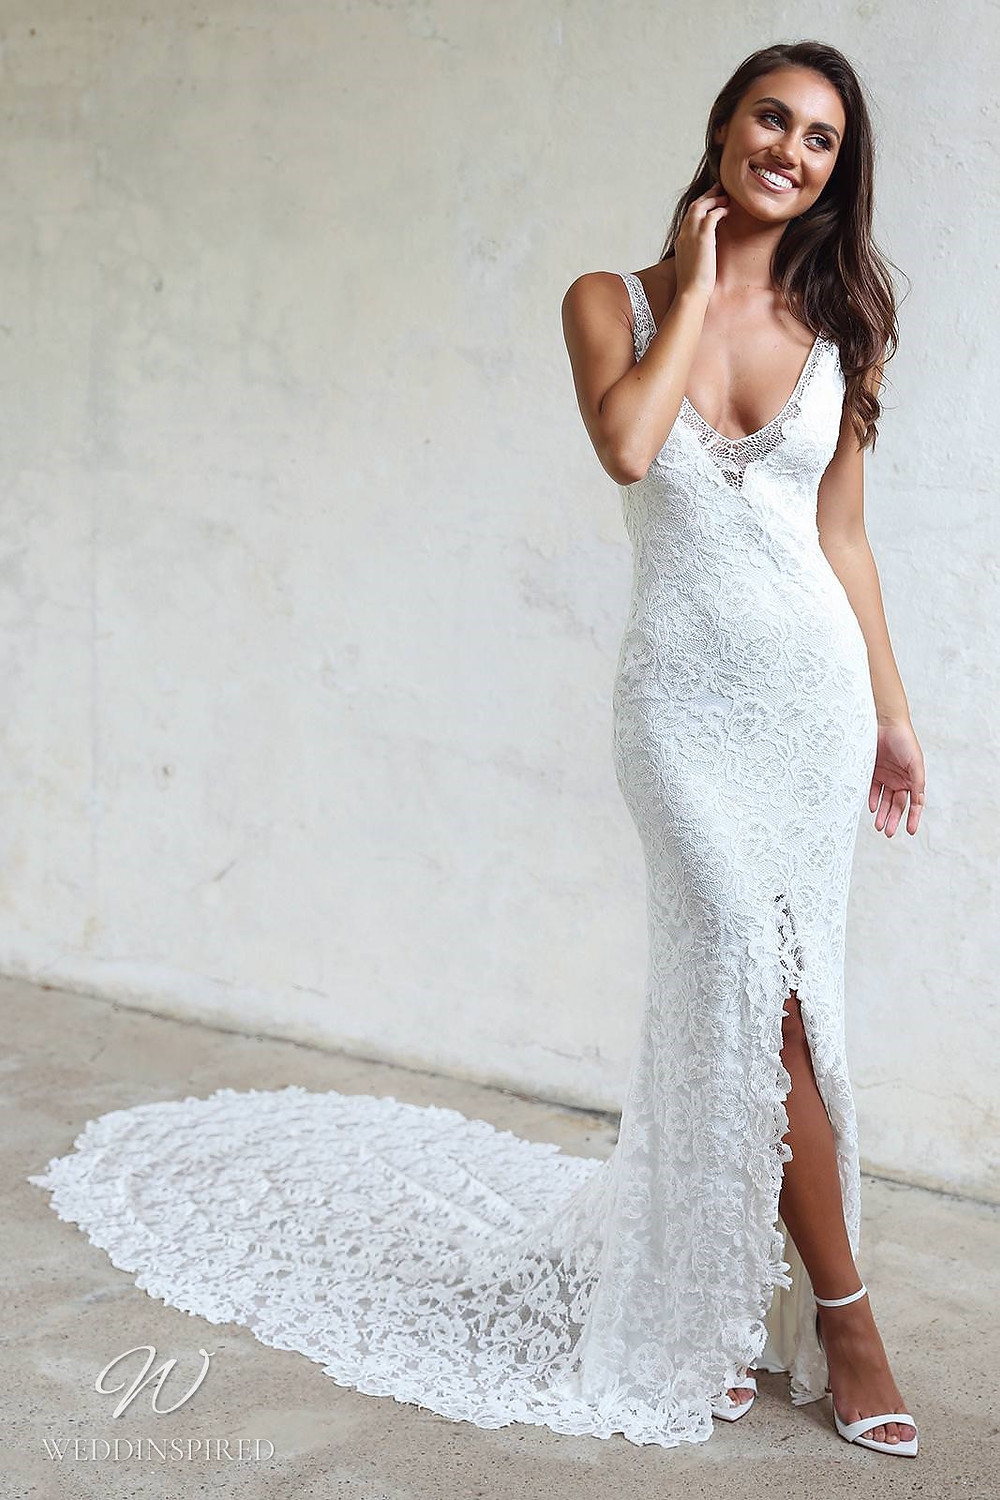 A Grace Loves Lace mermaid lace wedding dress with a high slit, train and a v neck